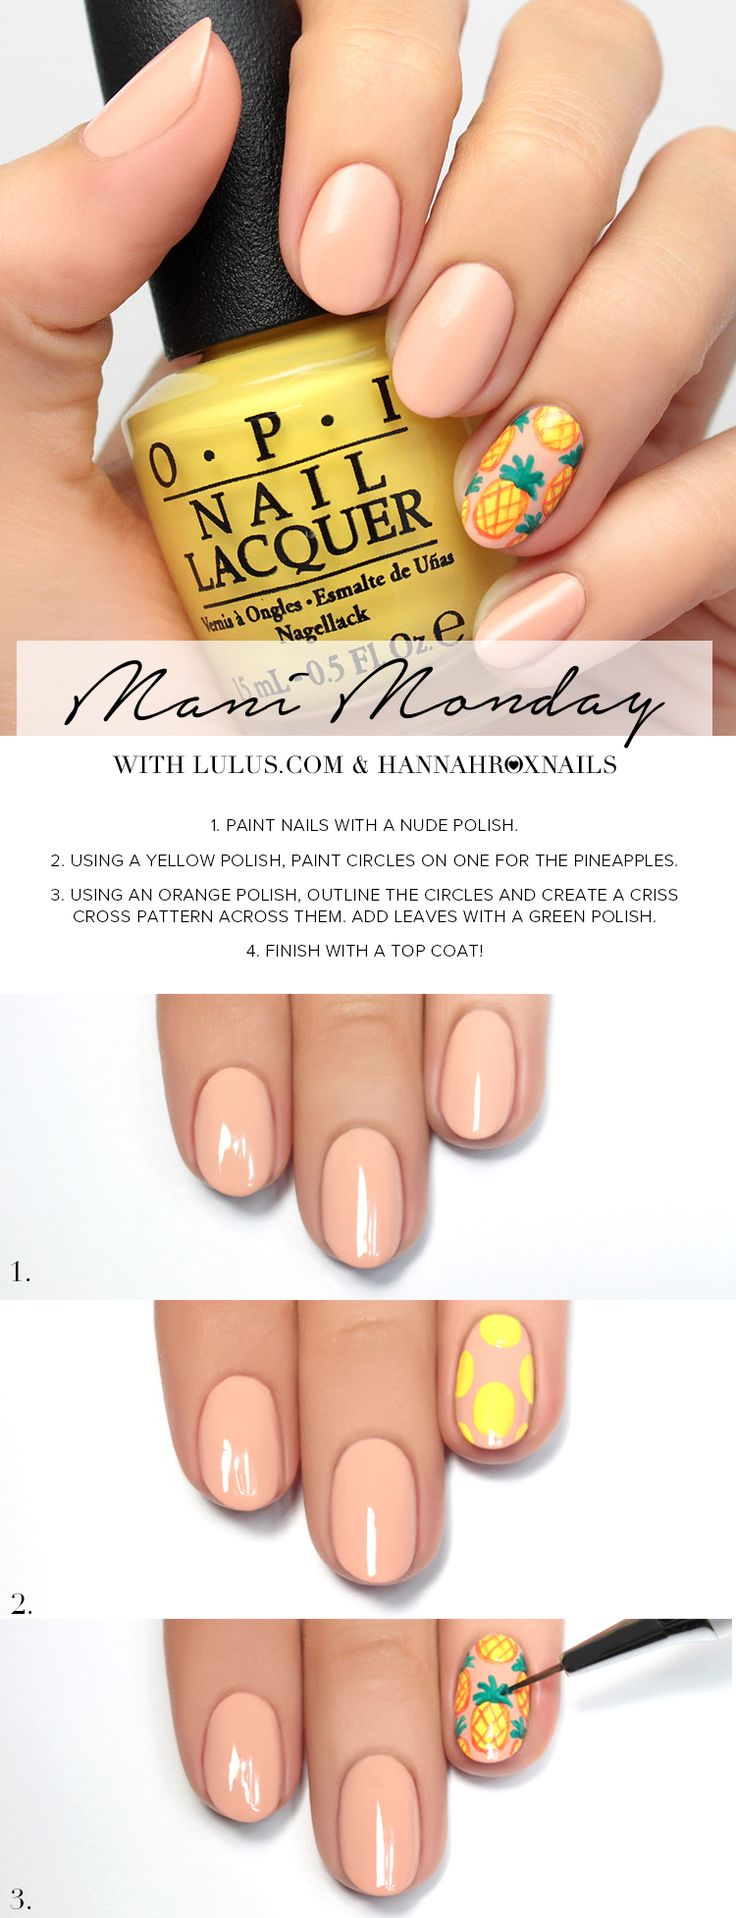 Mani Monday: Nude with Pineapple Accent Nail Tutorial at LuLus.com!